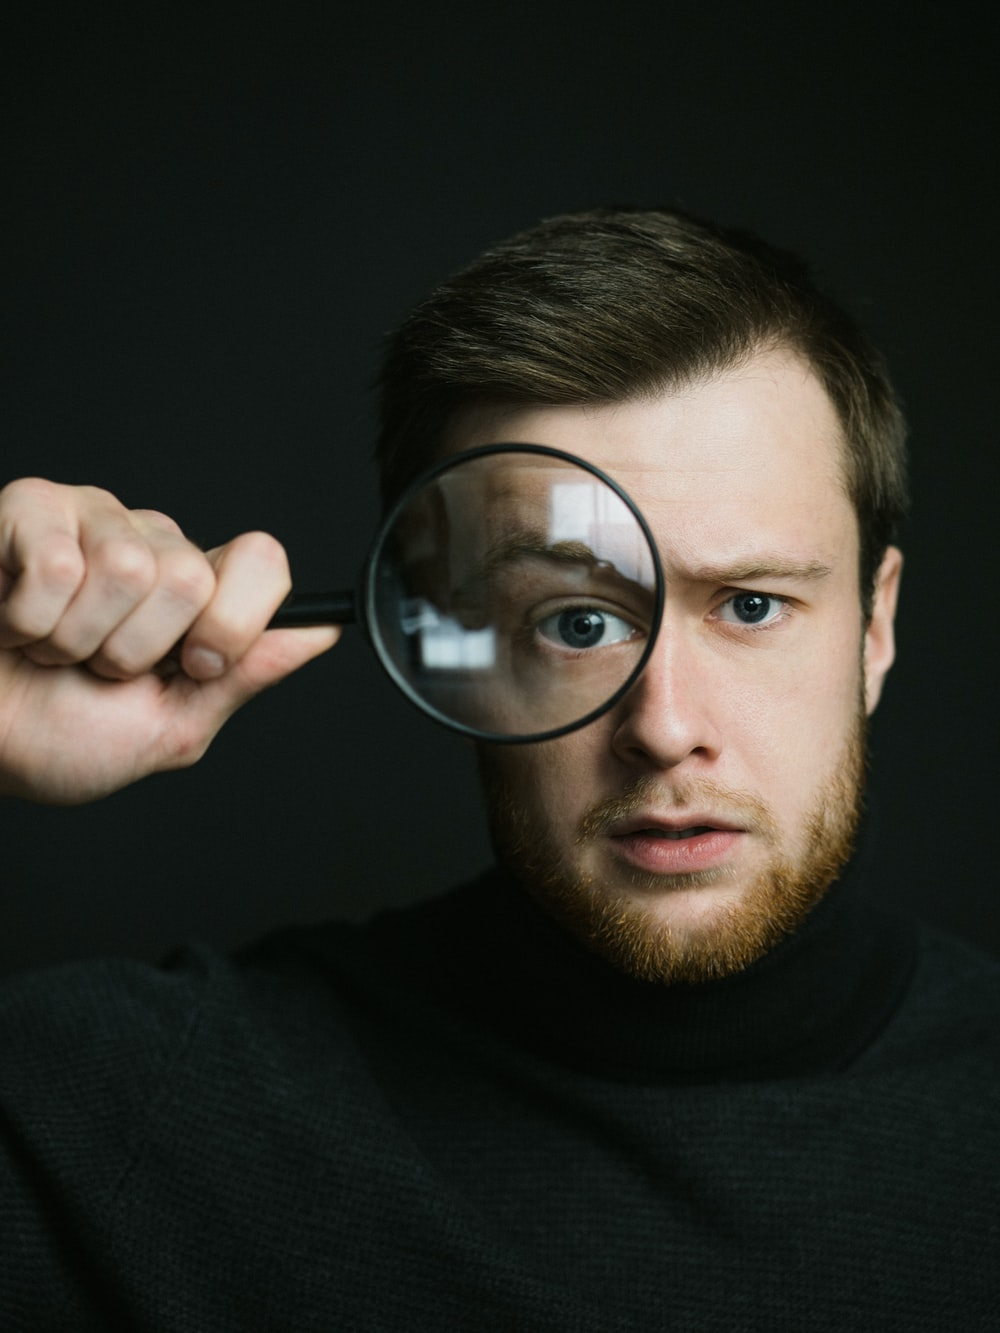 man in black crew neck shirt holding magnifying glass